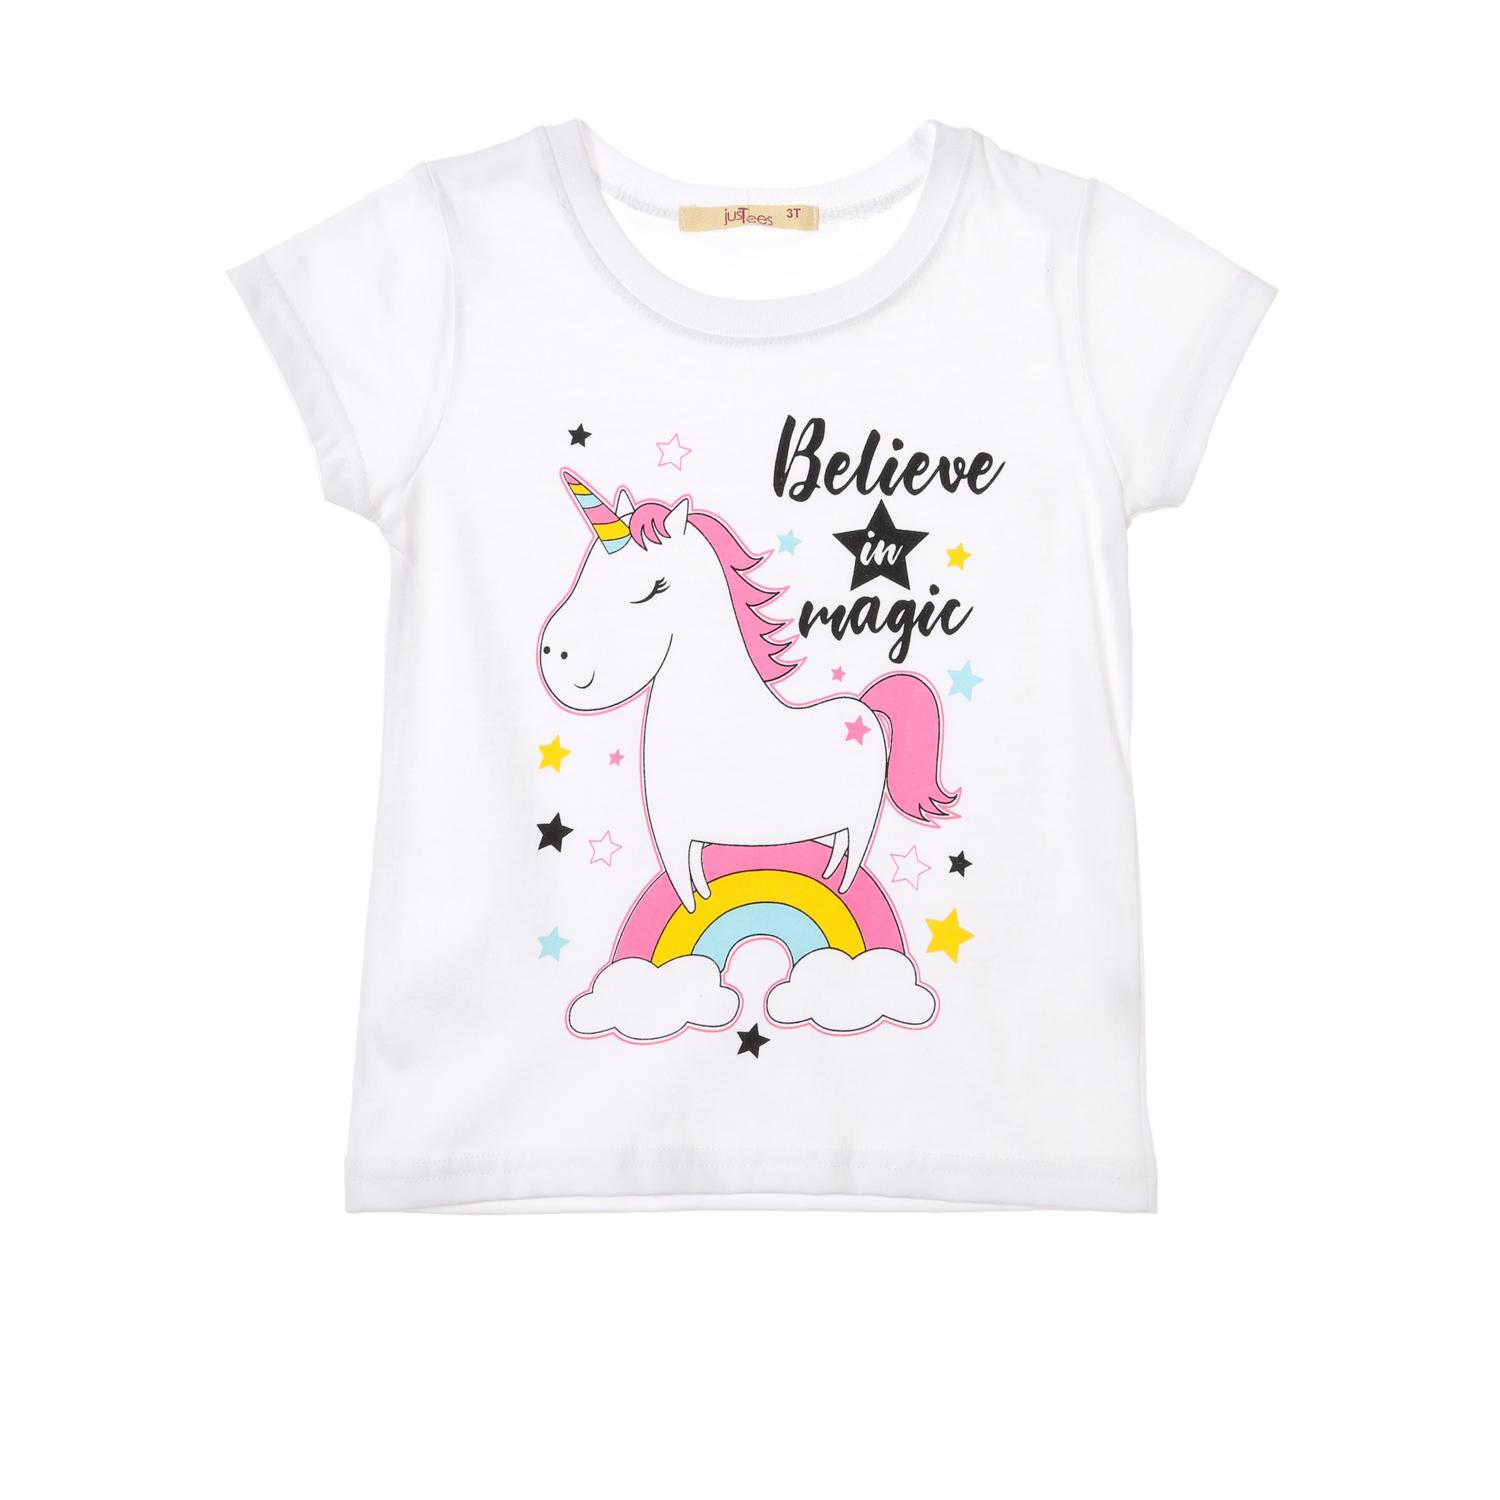 ff6f85abd Girls Clothing and Accessories for sale - Baby Clothing Accessories ...